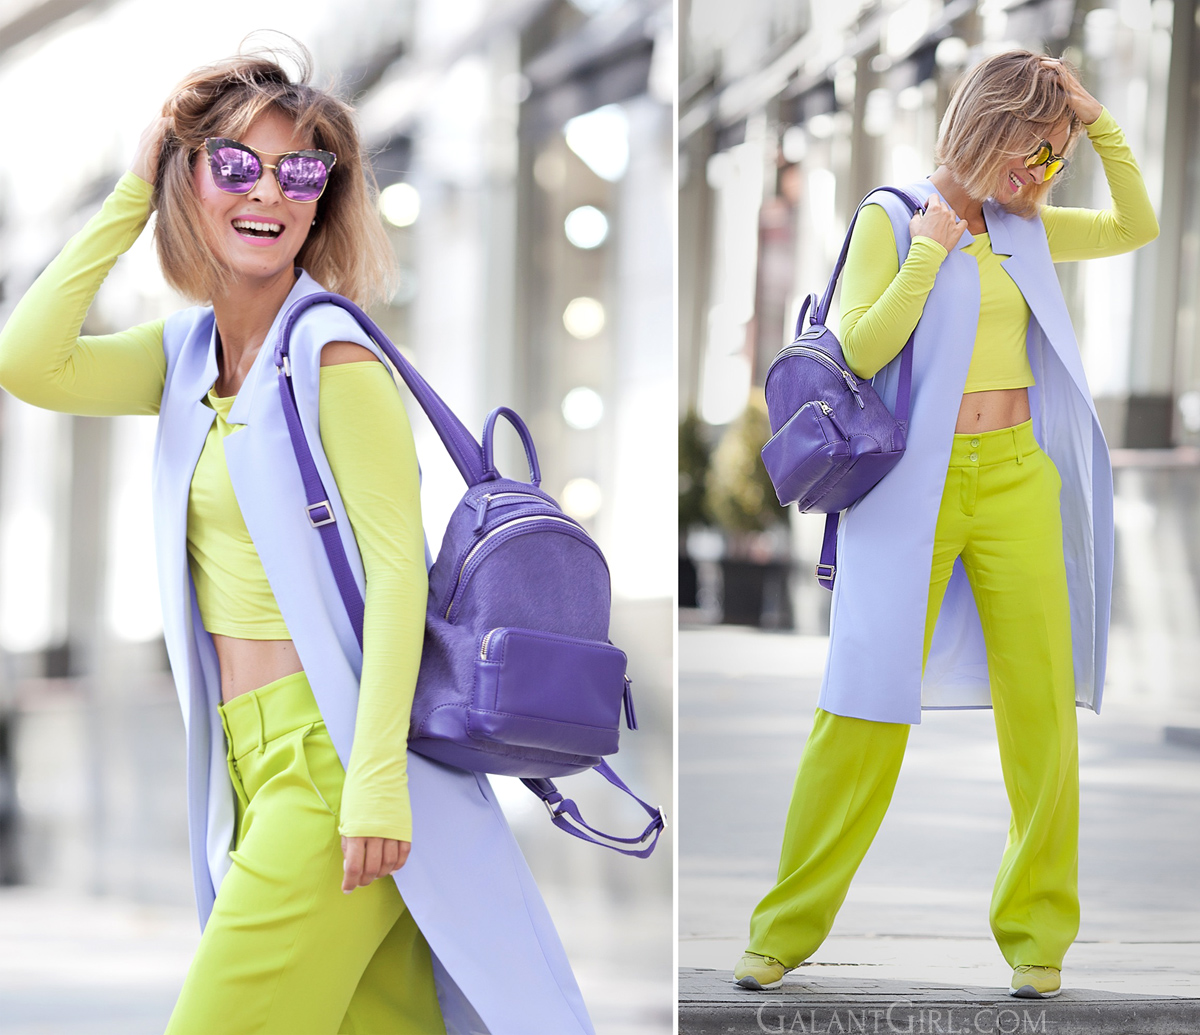 lime-green-trousers-pernelle+backpack-fall+outfit-fashion+blogger-ellena+galant